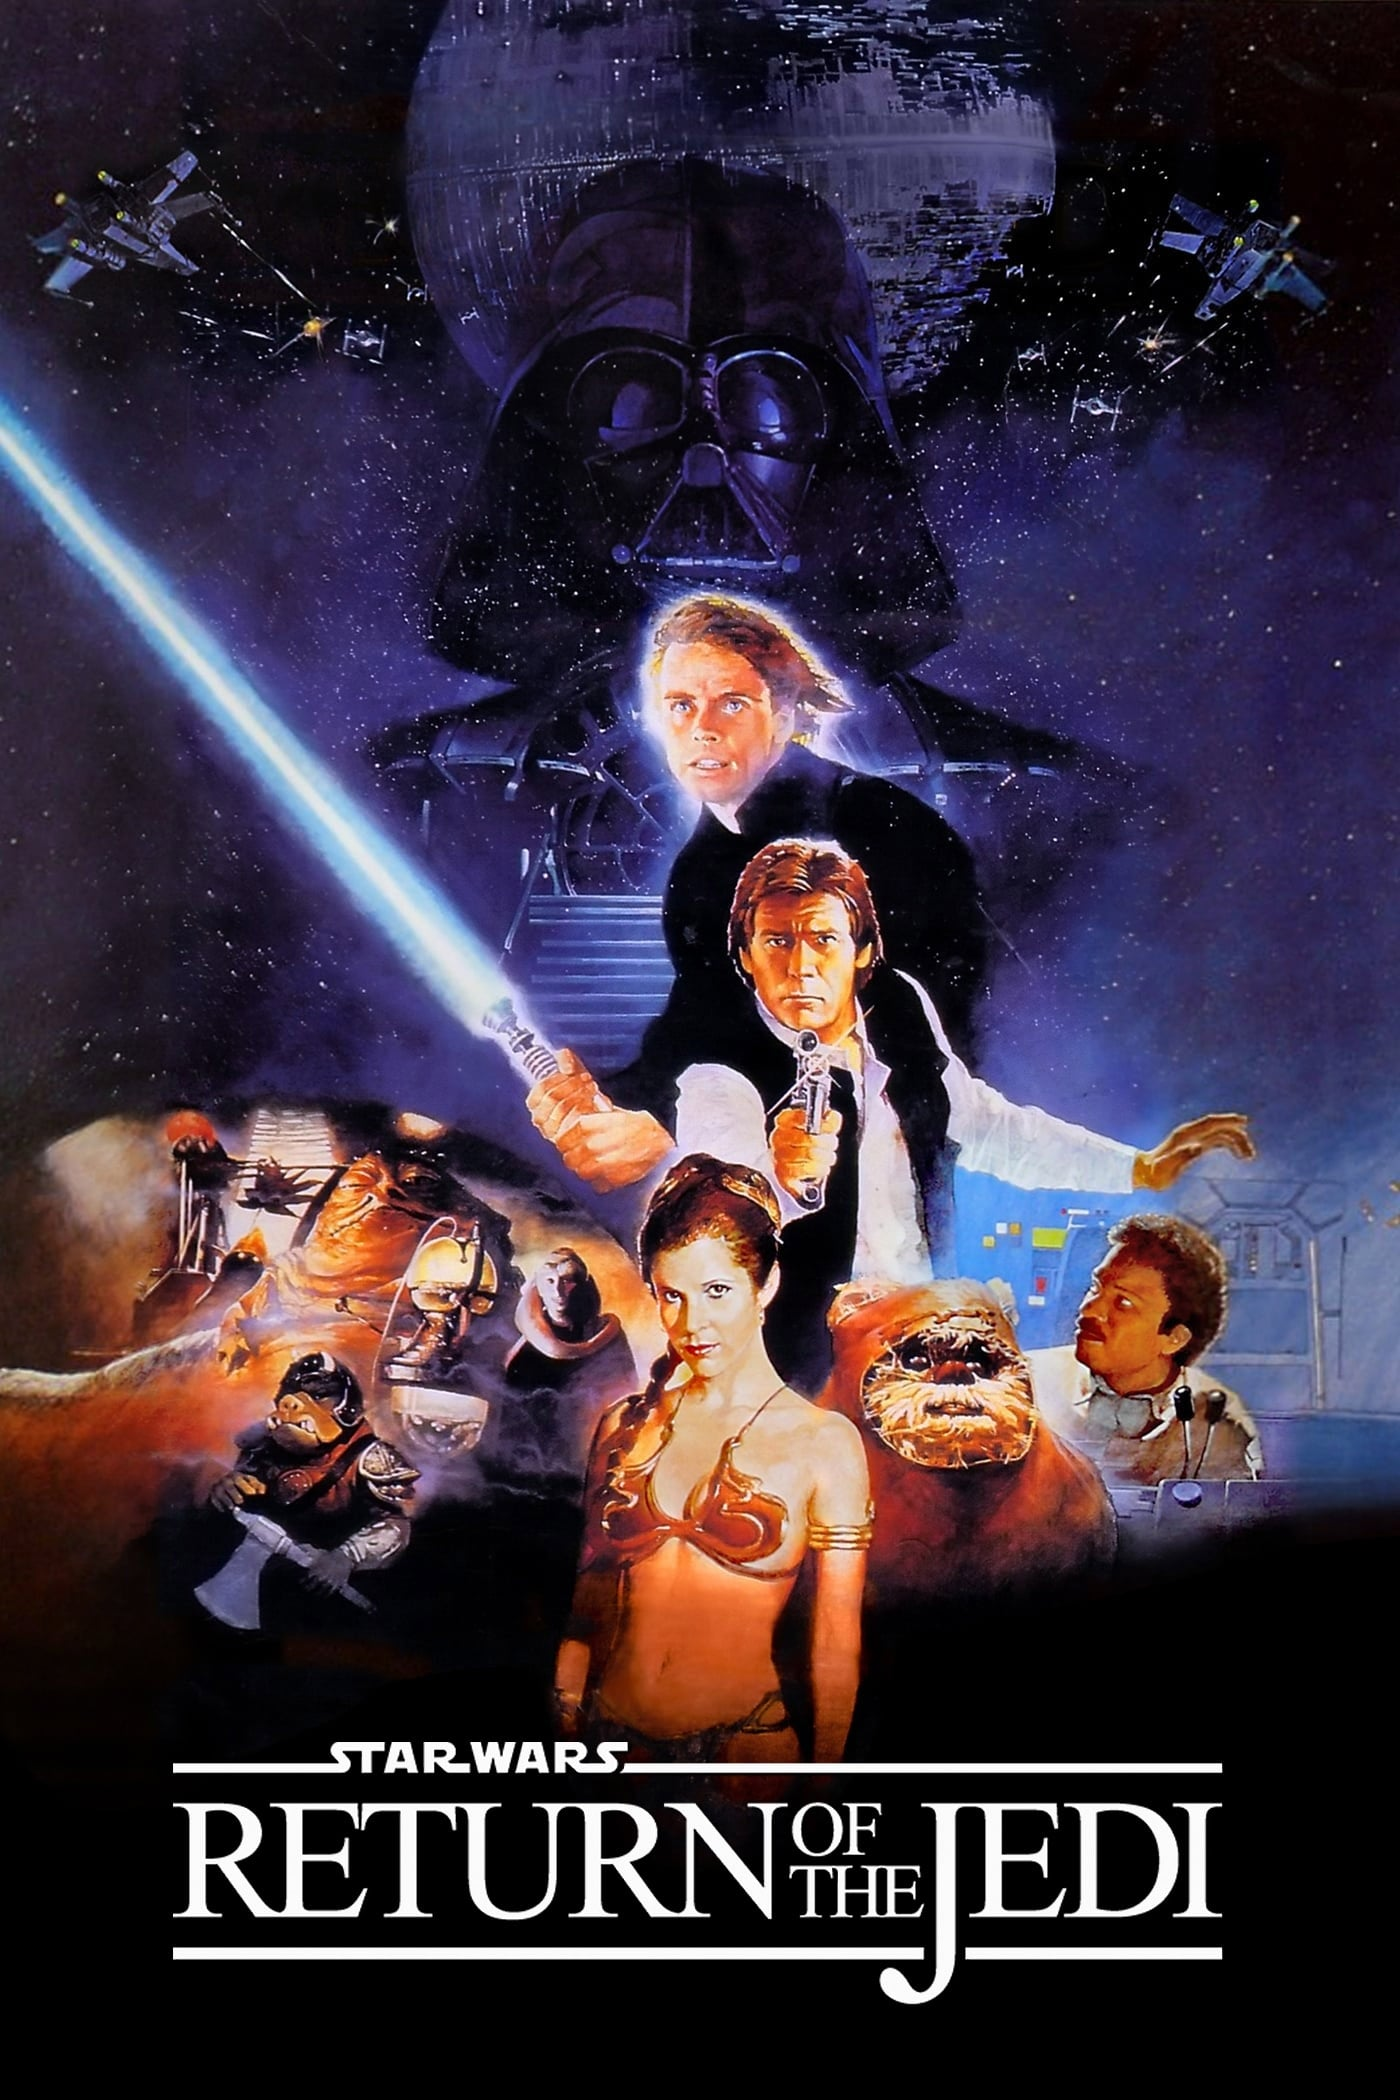 Poster for Return of the Jedi